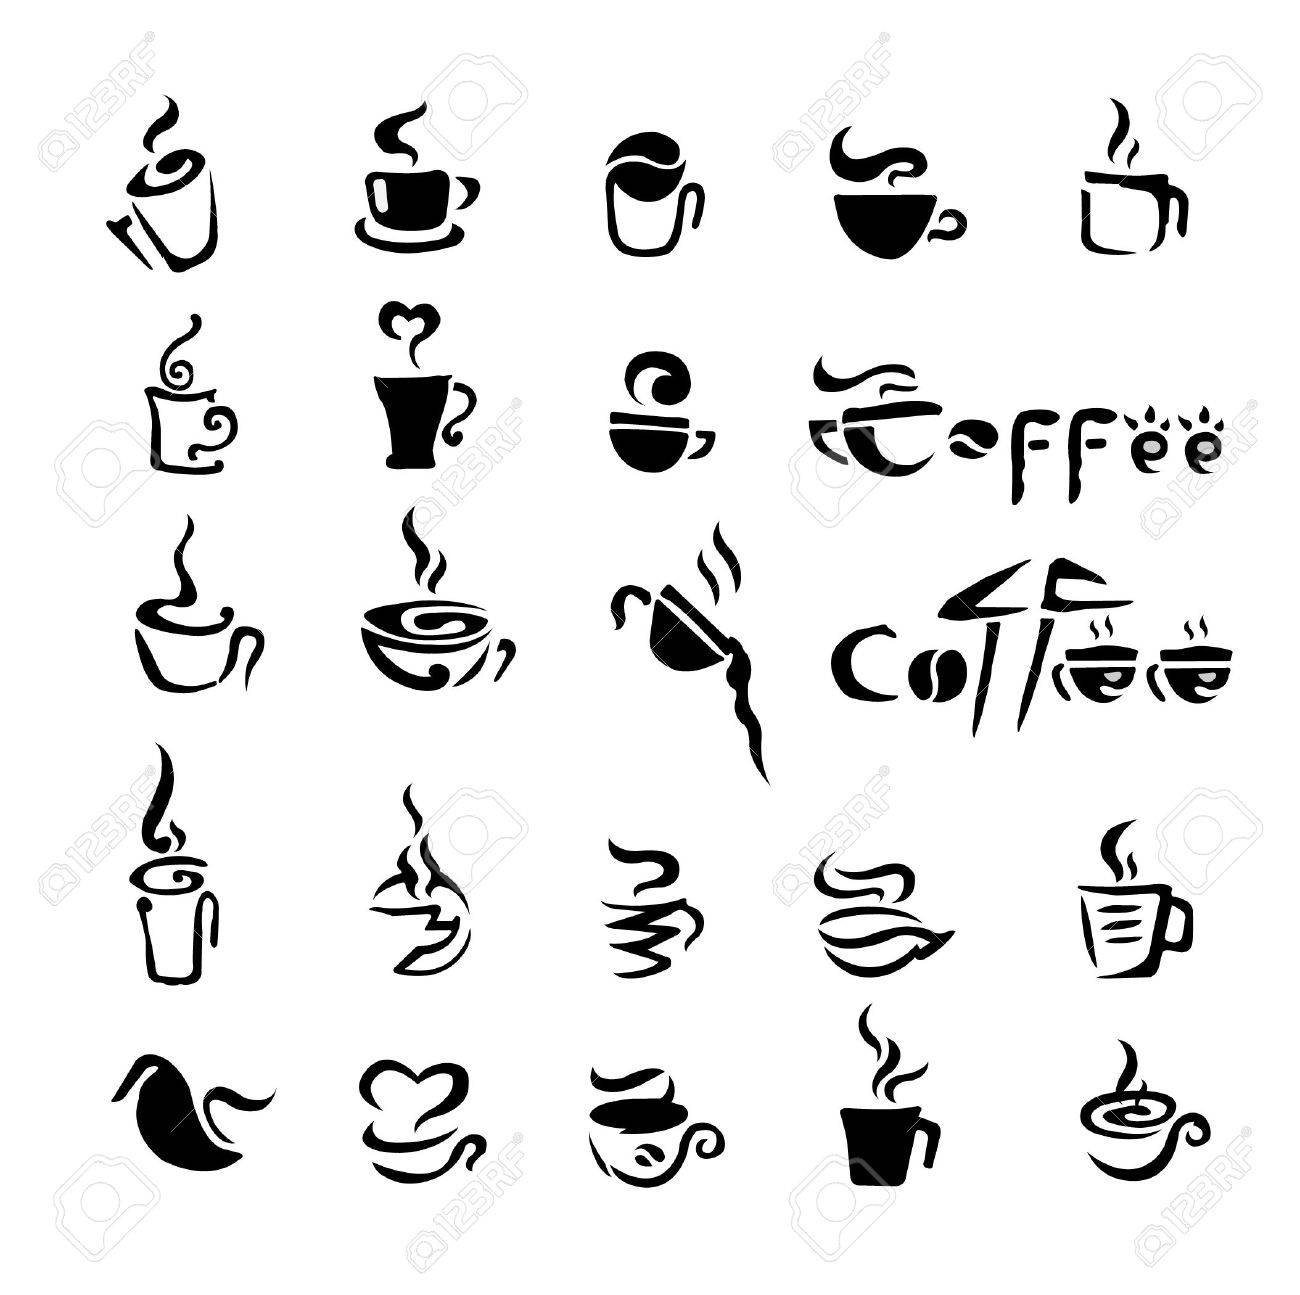 coffee sign Stock Vector - 11079596